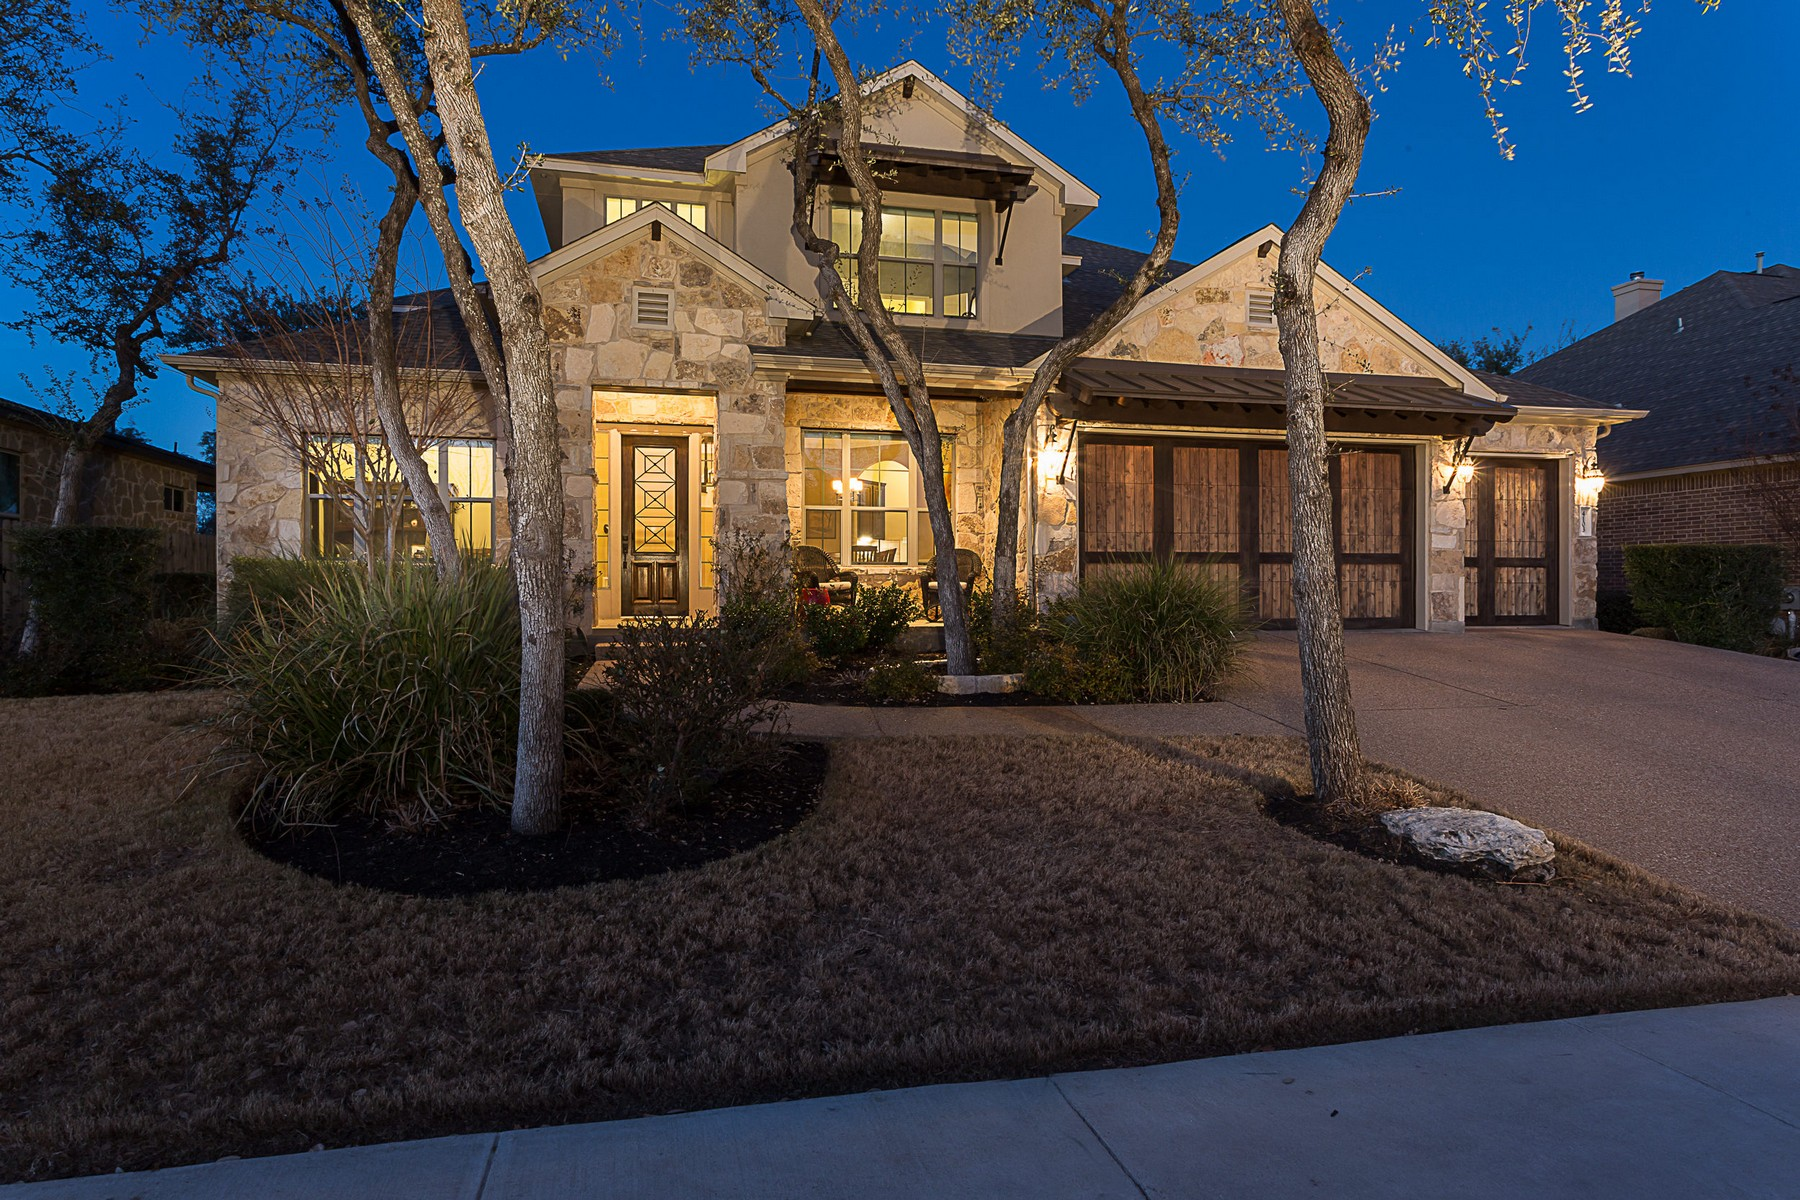 Single Family Home for Sale at Luxury living in The Ranch at Brushy Creek! 4103 Arrow Wood Rd Cedar Park, Texas 78613 United States